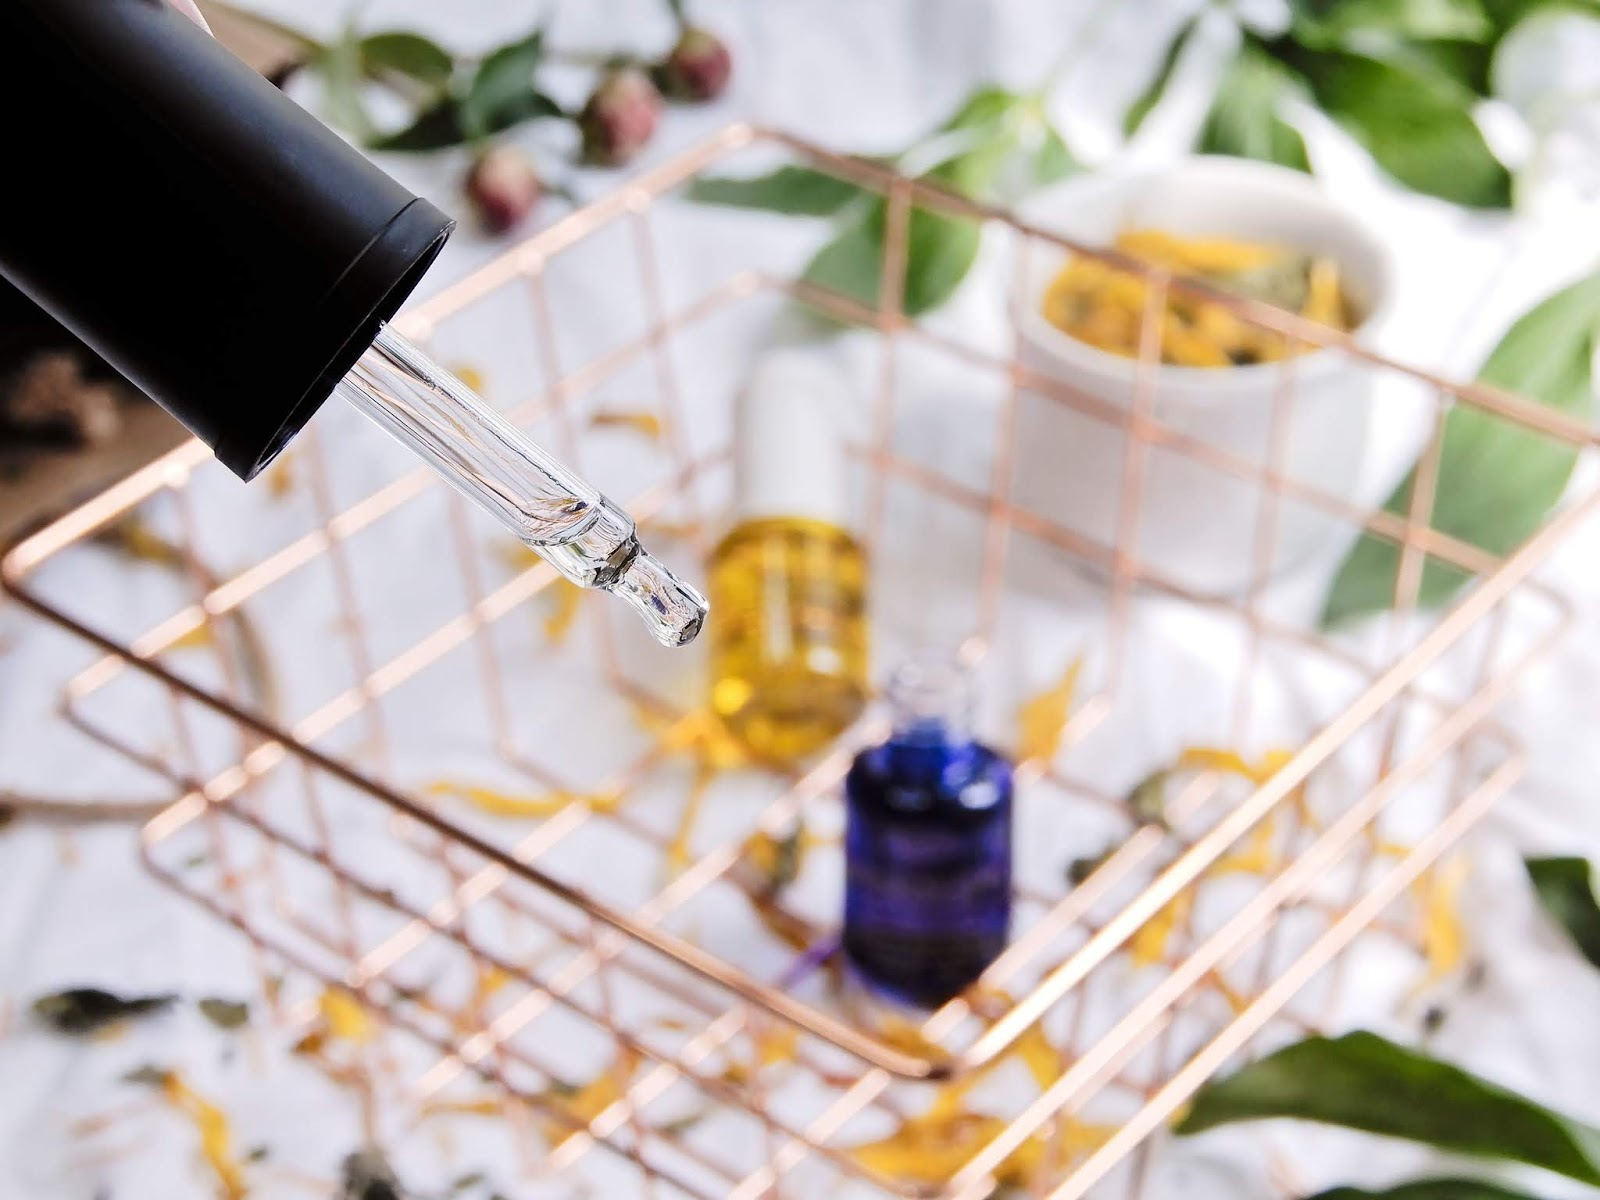 Kiehl's Midnight Recovery Concentrate, Kiehl's Daily Reviving Concentrate, Kiehl's Midnight Recovery Concentrate opinia, Kiehl's Daily Reviving Concentrate opinia,